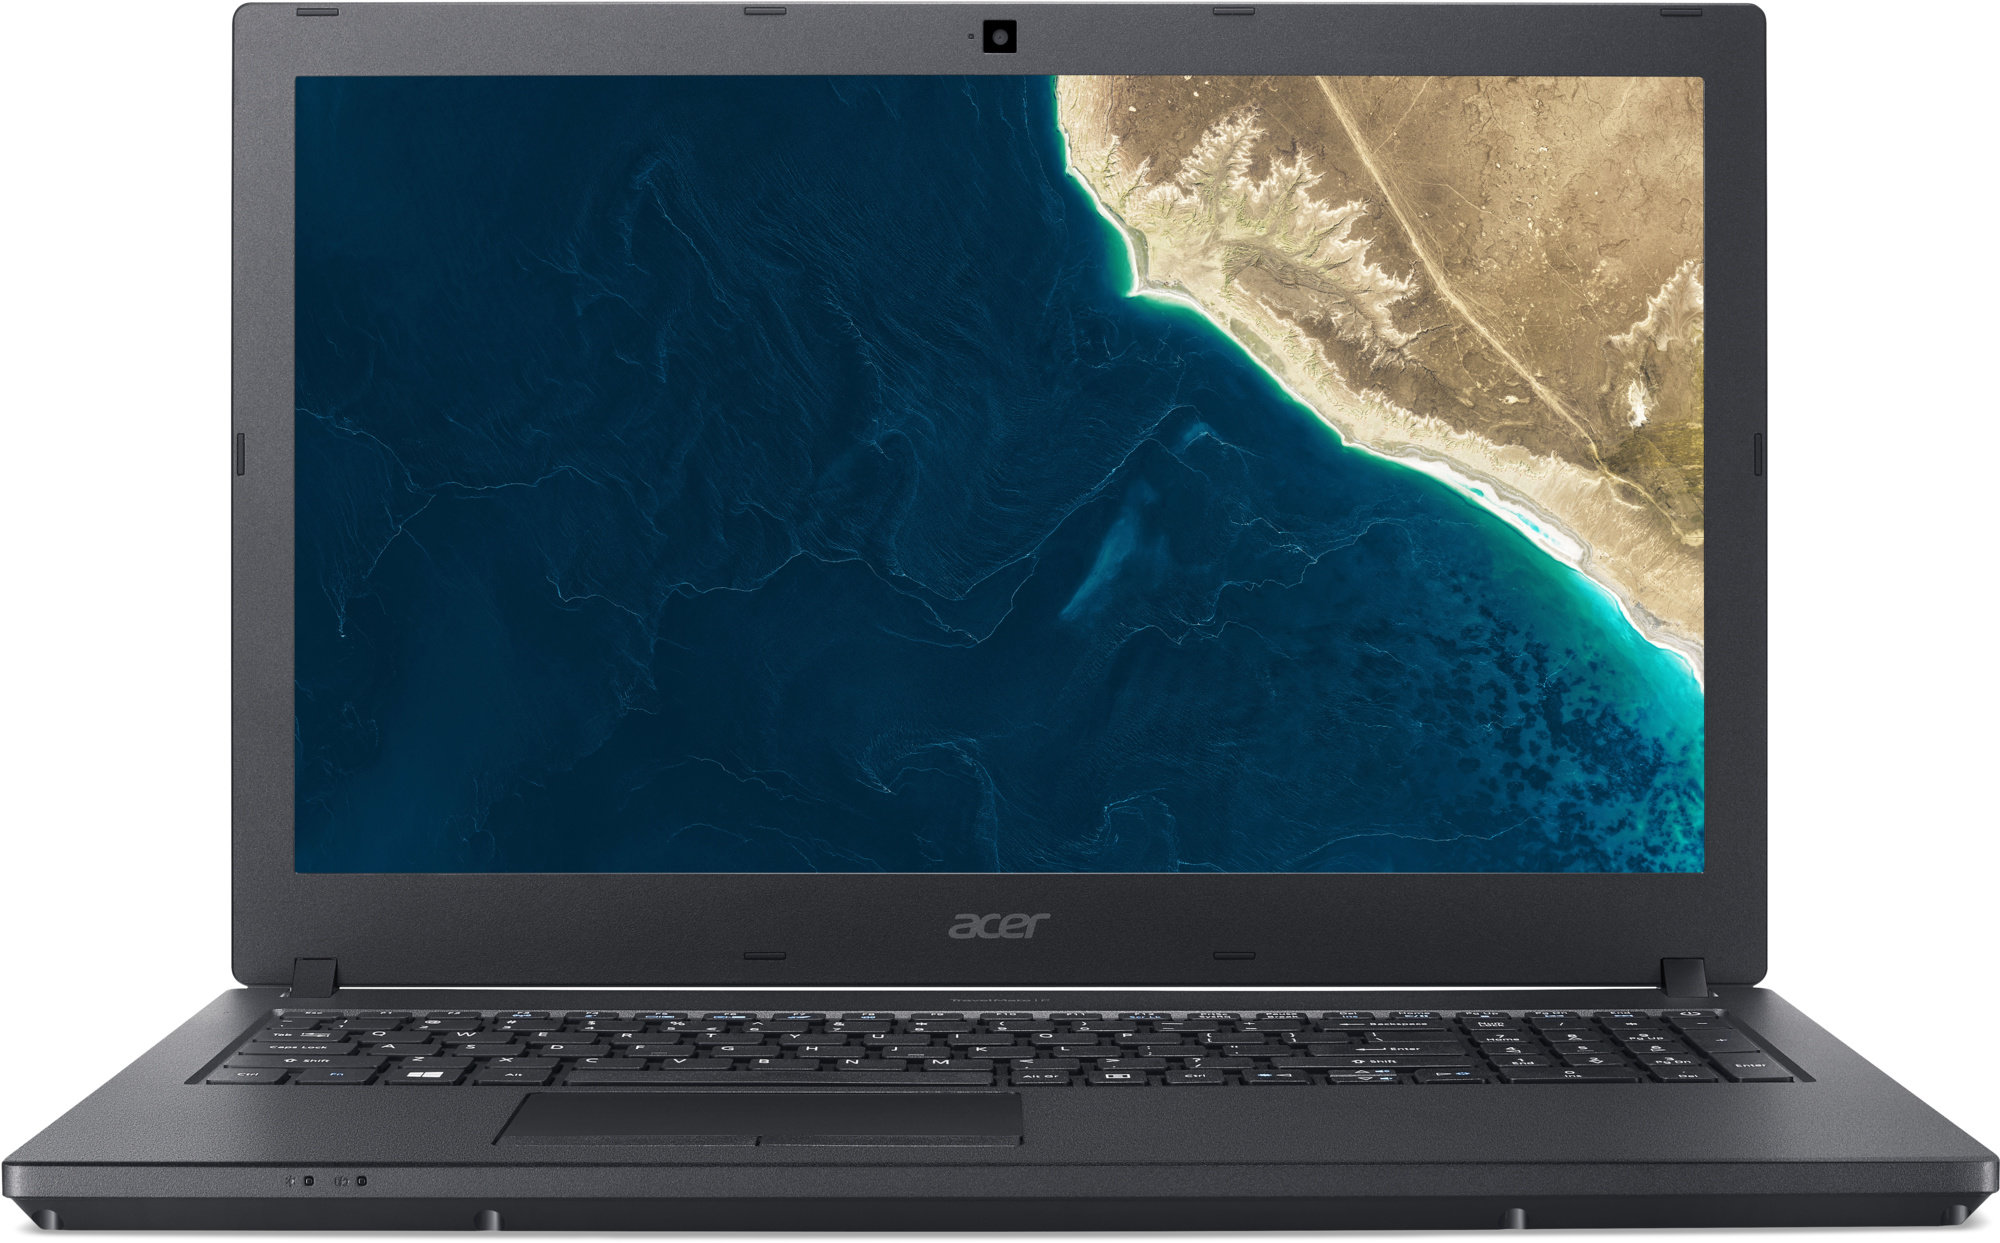 "AcerTravelMate (P2510-M-38BG) i3-7100U/4GB+N/256GB SSD+N/HD Graphics/15.6"" HD matný/BT/W10 Pro/Black"